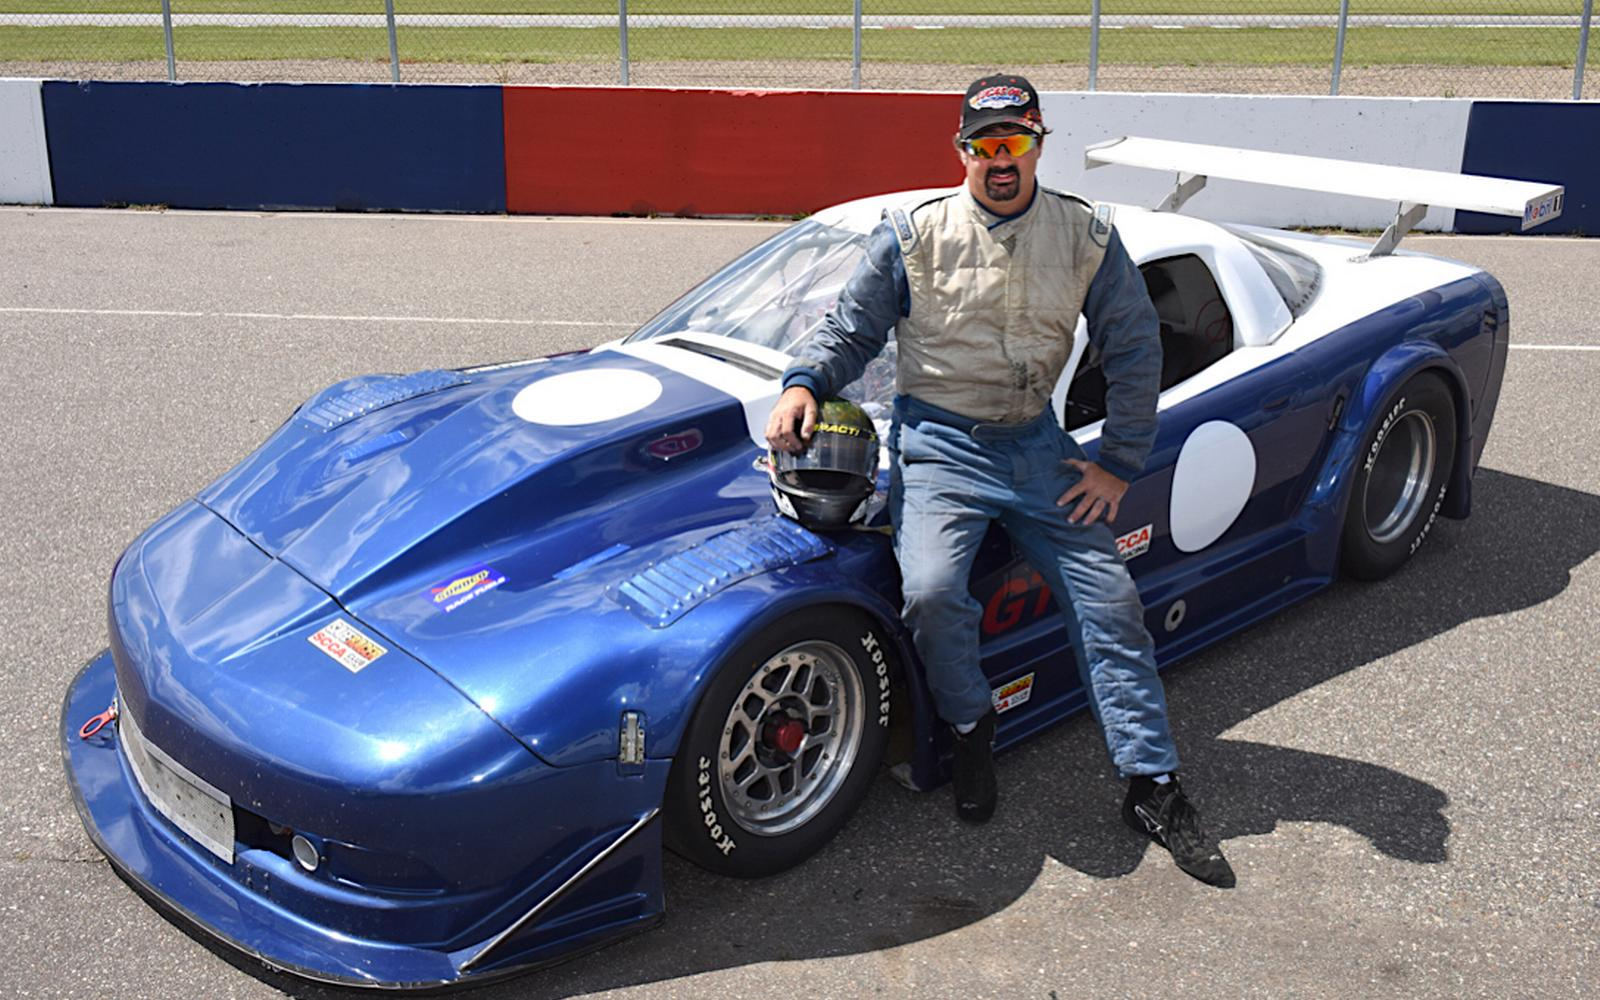 SPECTATORS WELCOME! TRANS AM RETURNS FOR FREE WEEKEND OF RACING